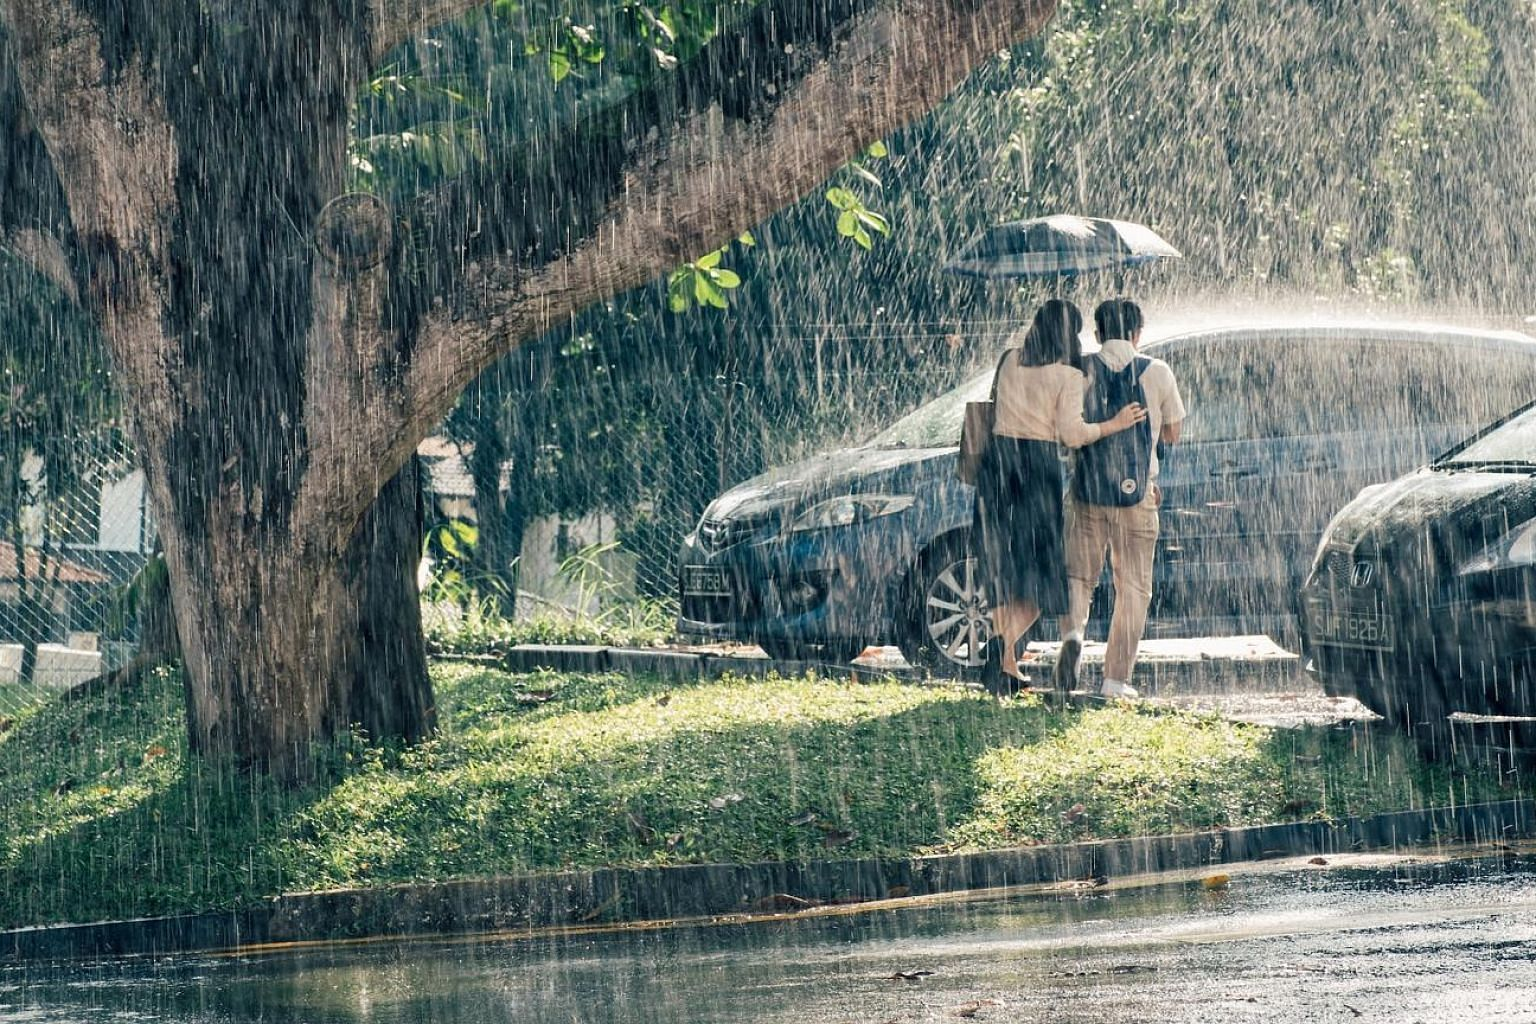 Wet Season tells the story of a Chinese-language teacher struggling with a failing marriage, who forms a life-changing friendship with a student.